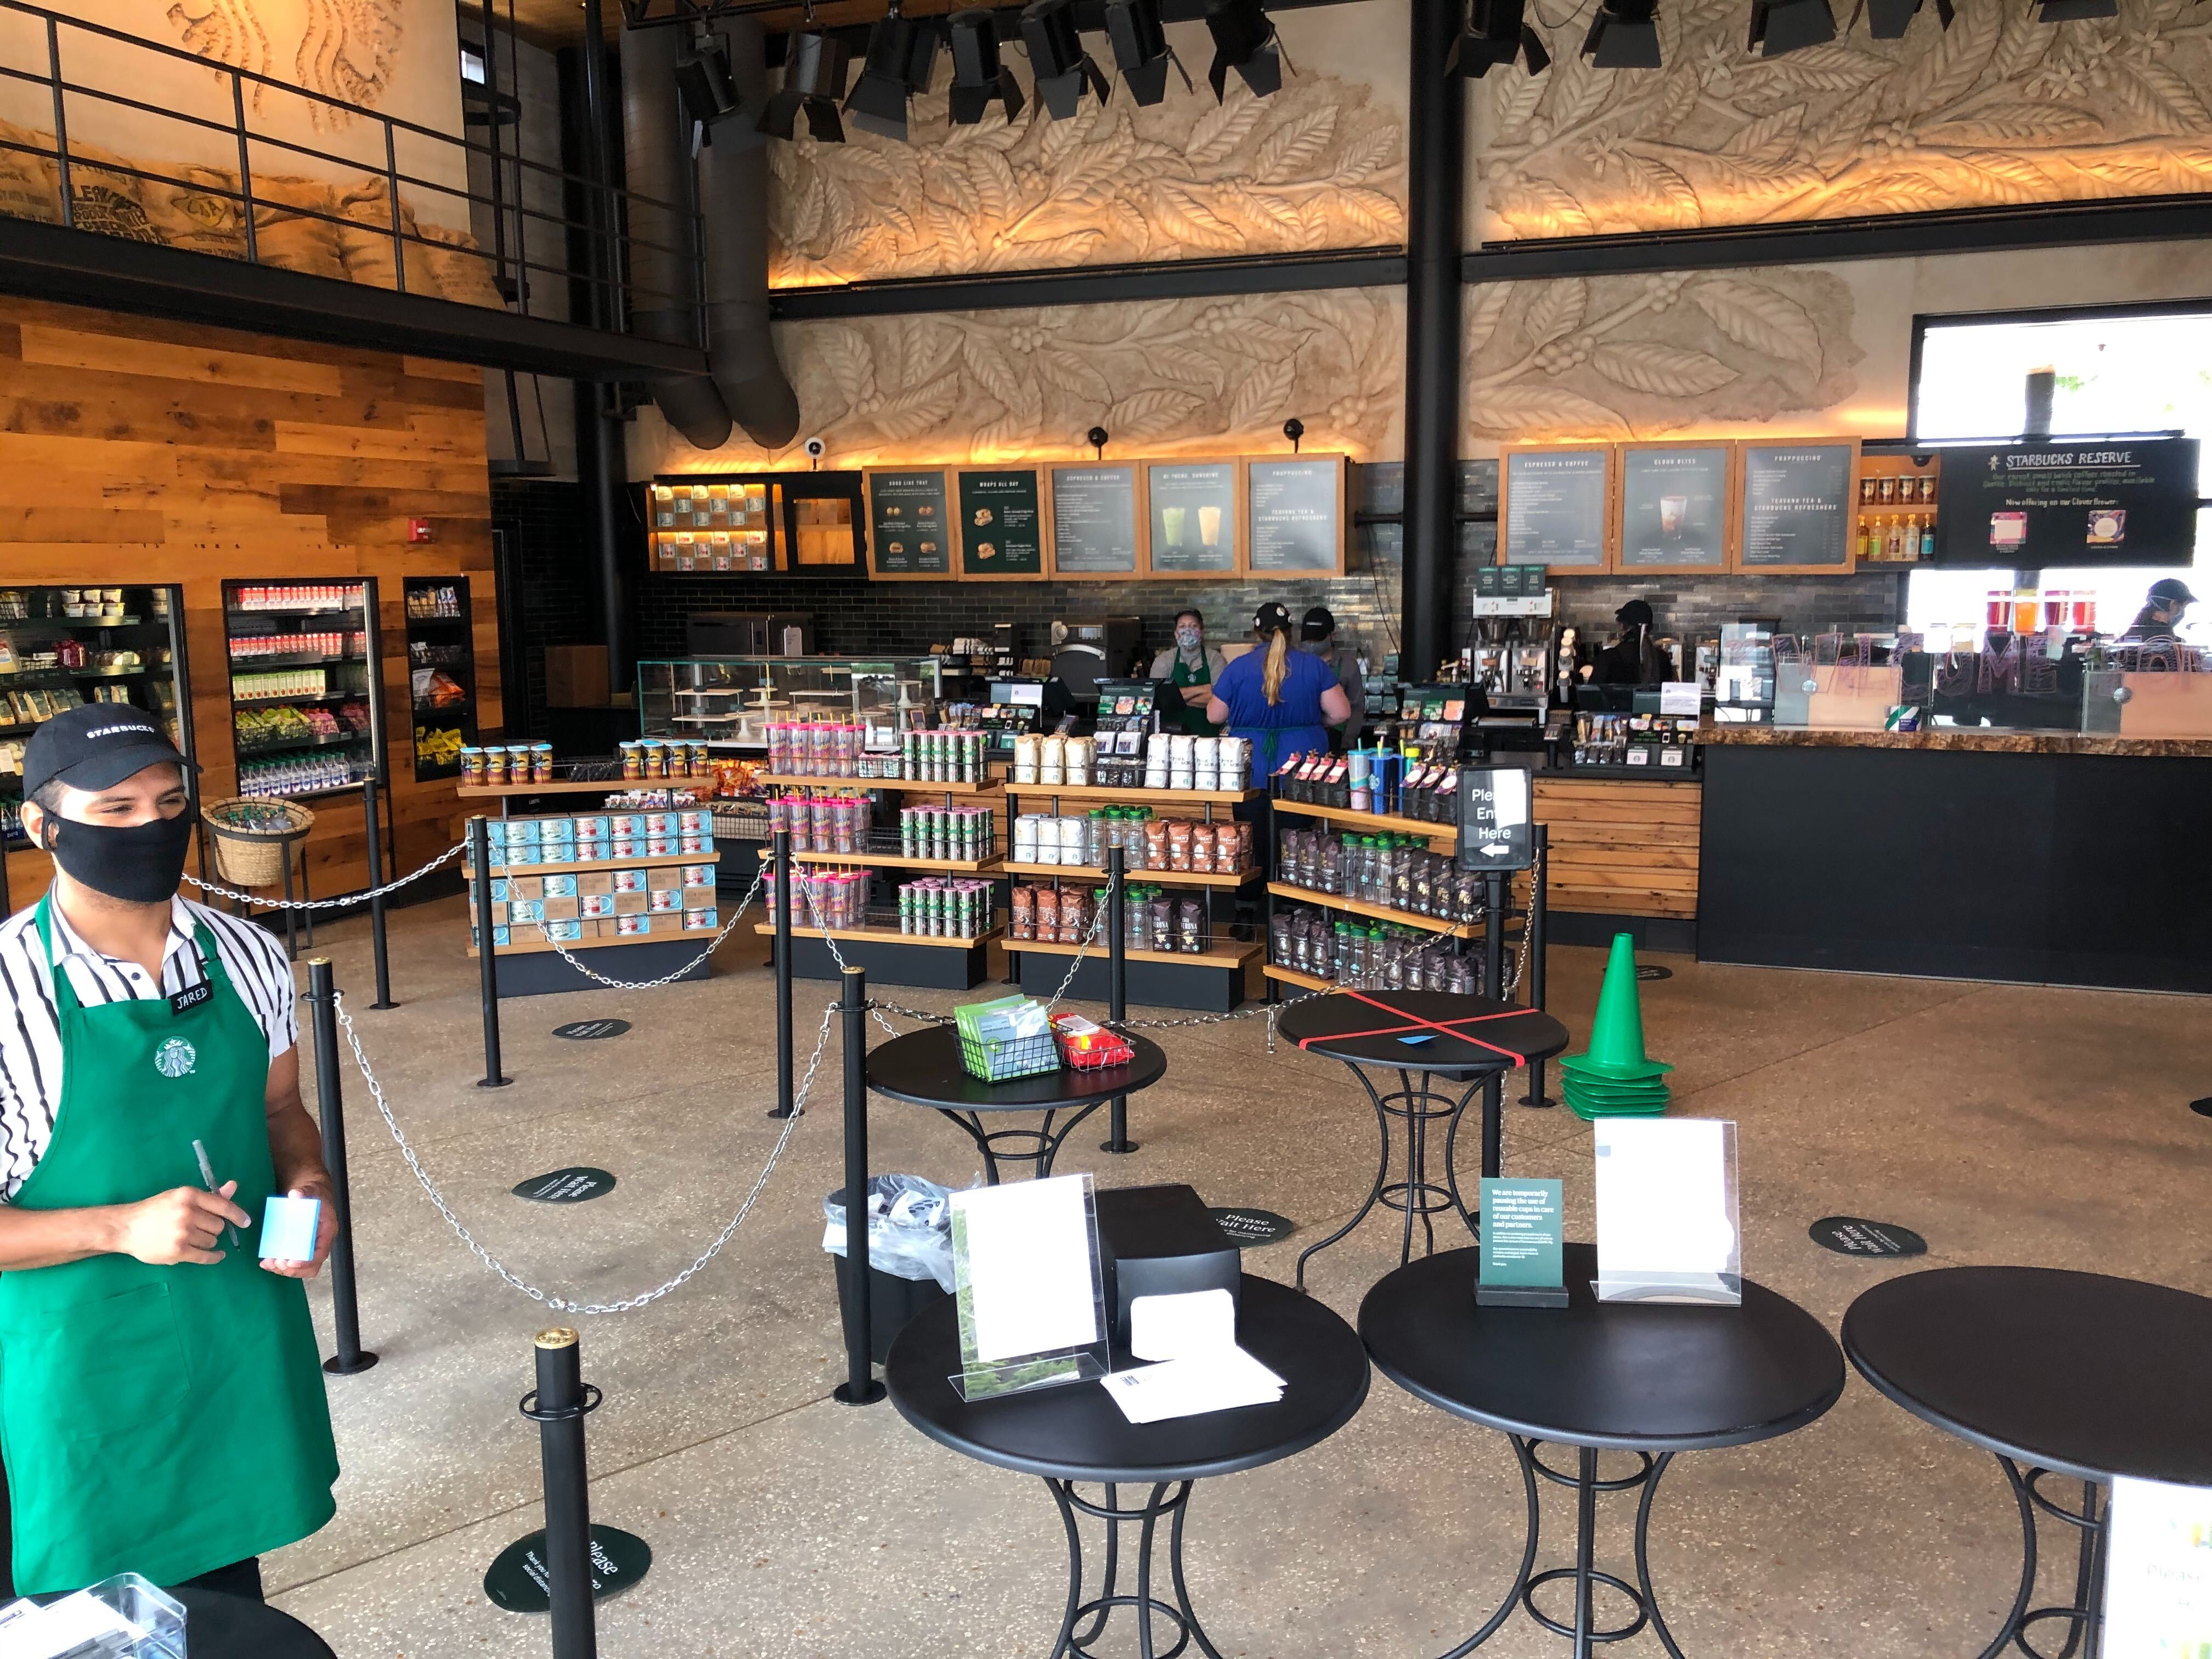 This week's top stories in supply chain and logistics: Starbucks takes $3.2B hit, TTI moves too #TEU many, postal rates set to increase July 1, California begins an investigation into Amazon's business practices, and Gogo expands Purell production in Ohio.